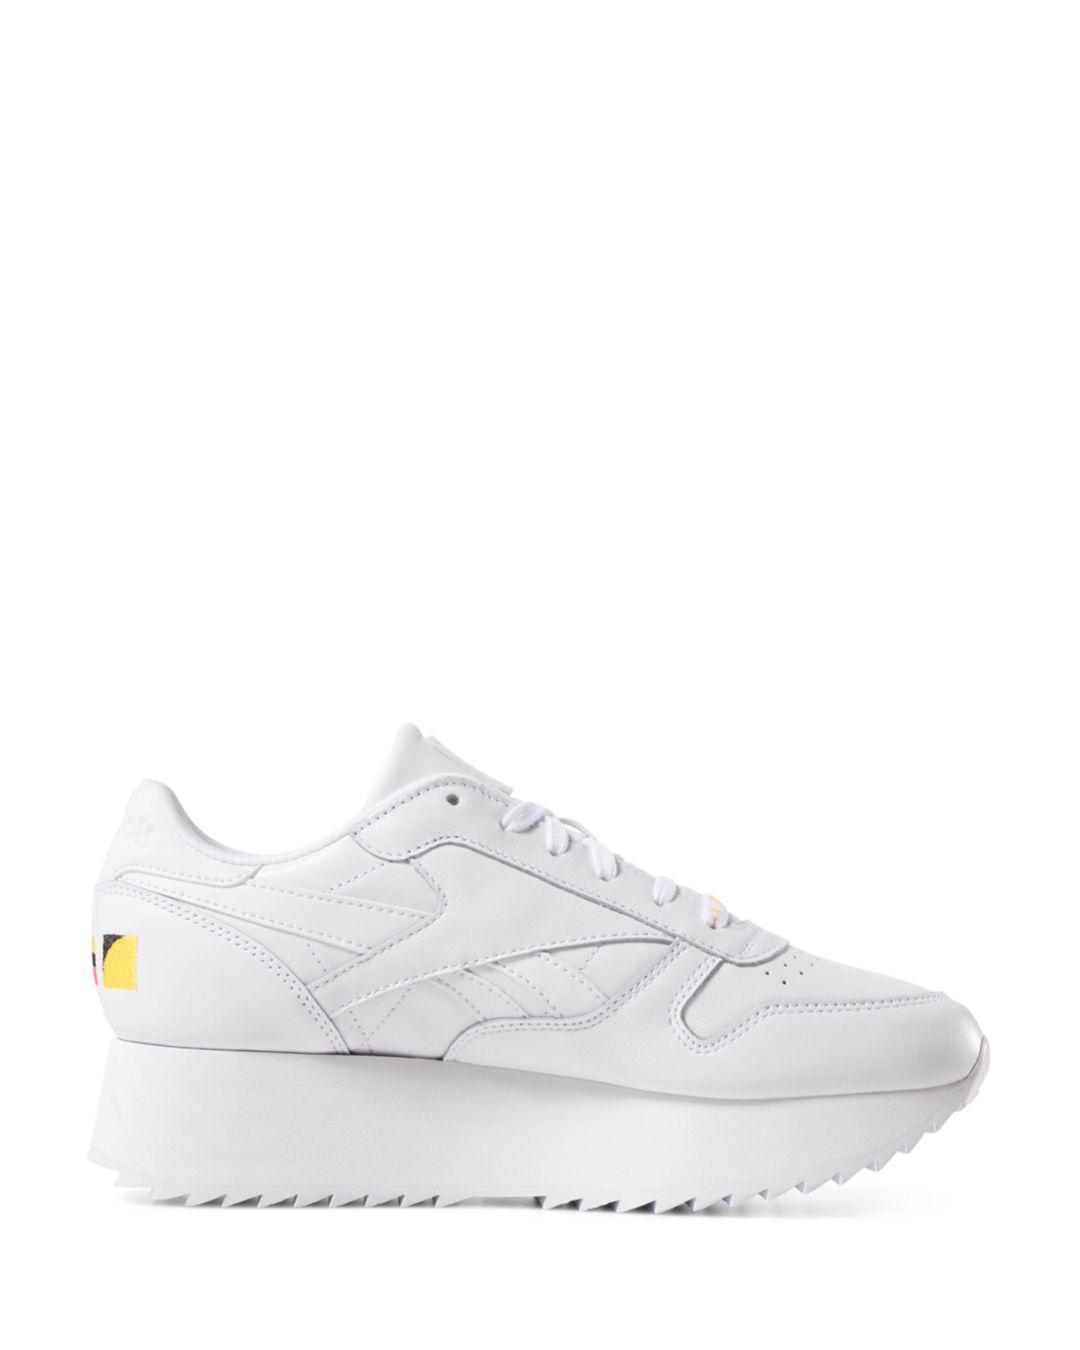 d28a3b6025a51 Lyst - Reebok X Gigi Hadid Women s Classic Leather Double Sneakers in White